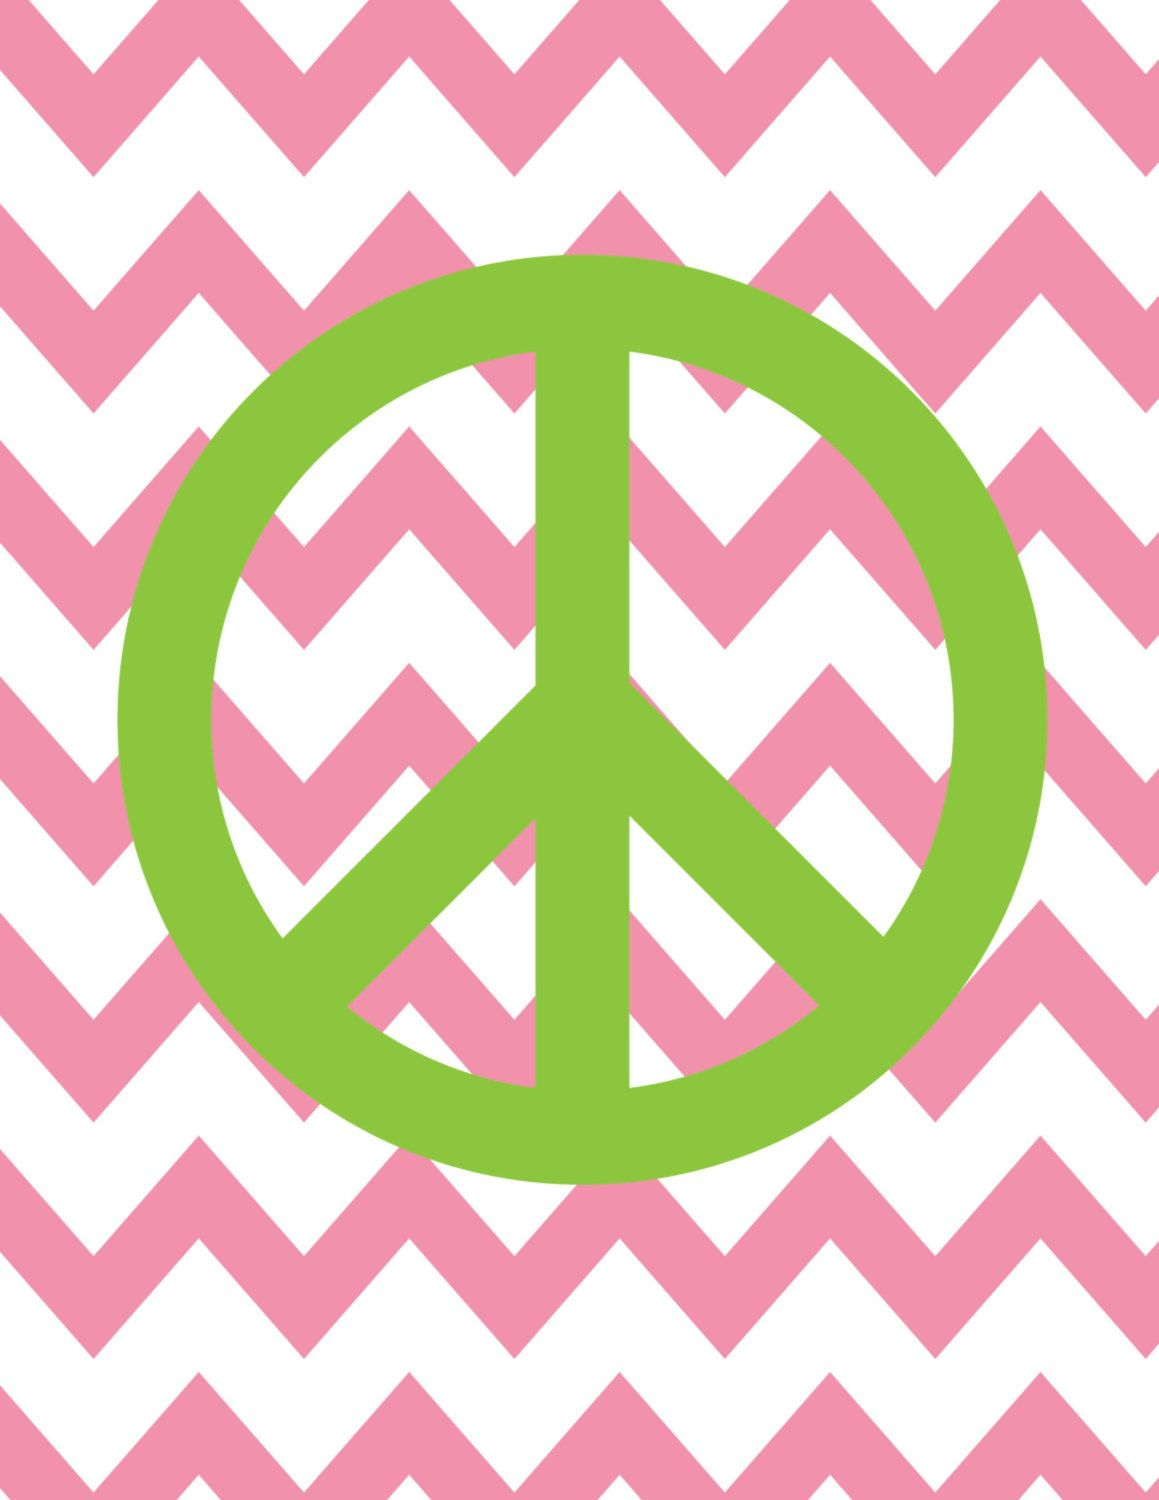 Peace Sign Decorating Ideas Simple Teen Room Decor Peace Sign Chevrontheeducatedowl On Etsy Decorating Inspiration